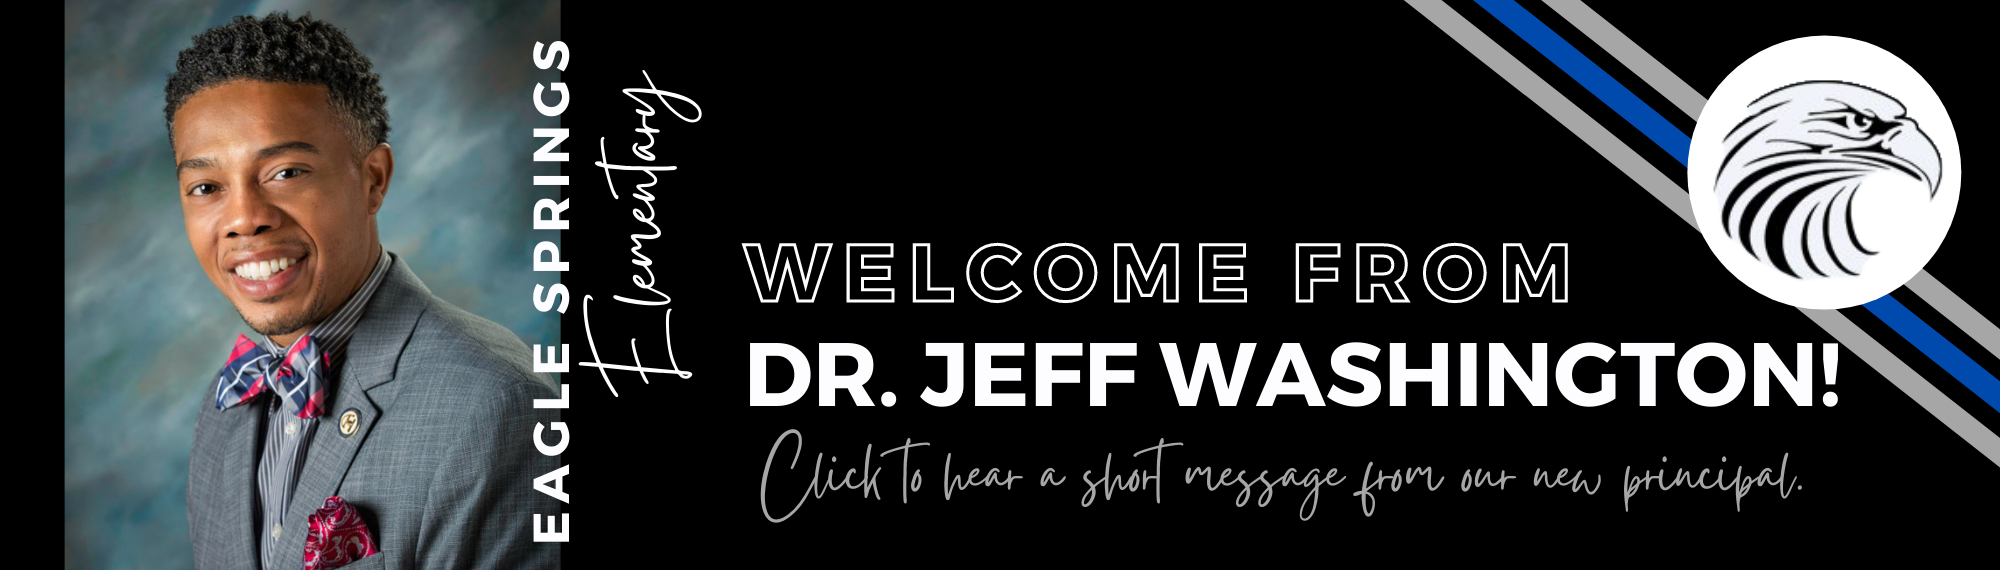 Welcome from Dr. Jeff Washington